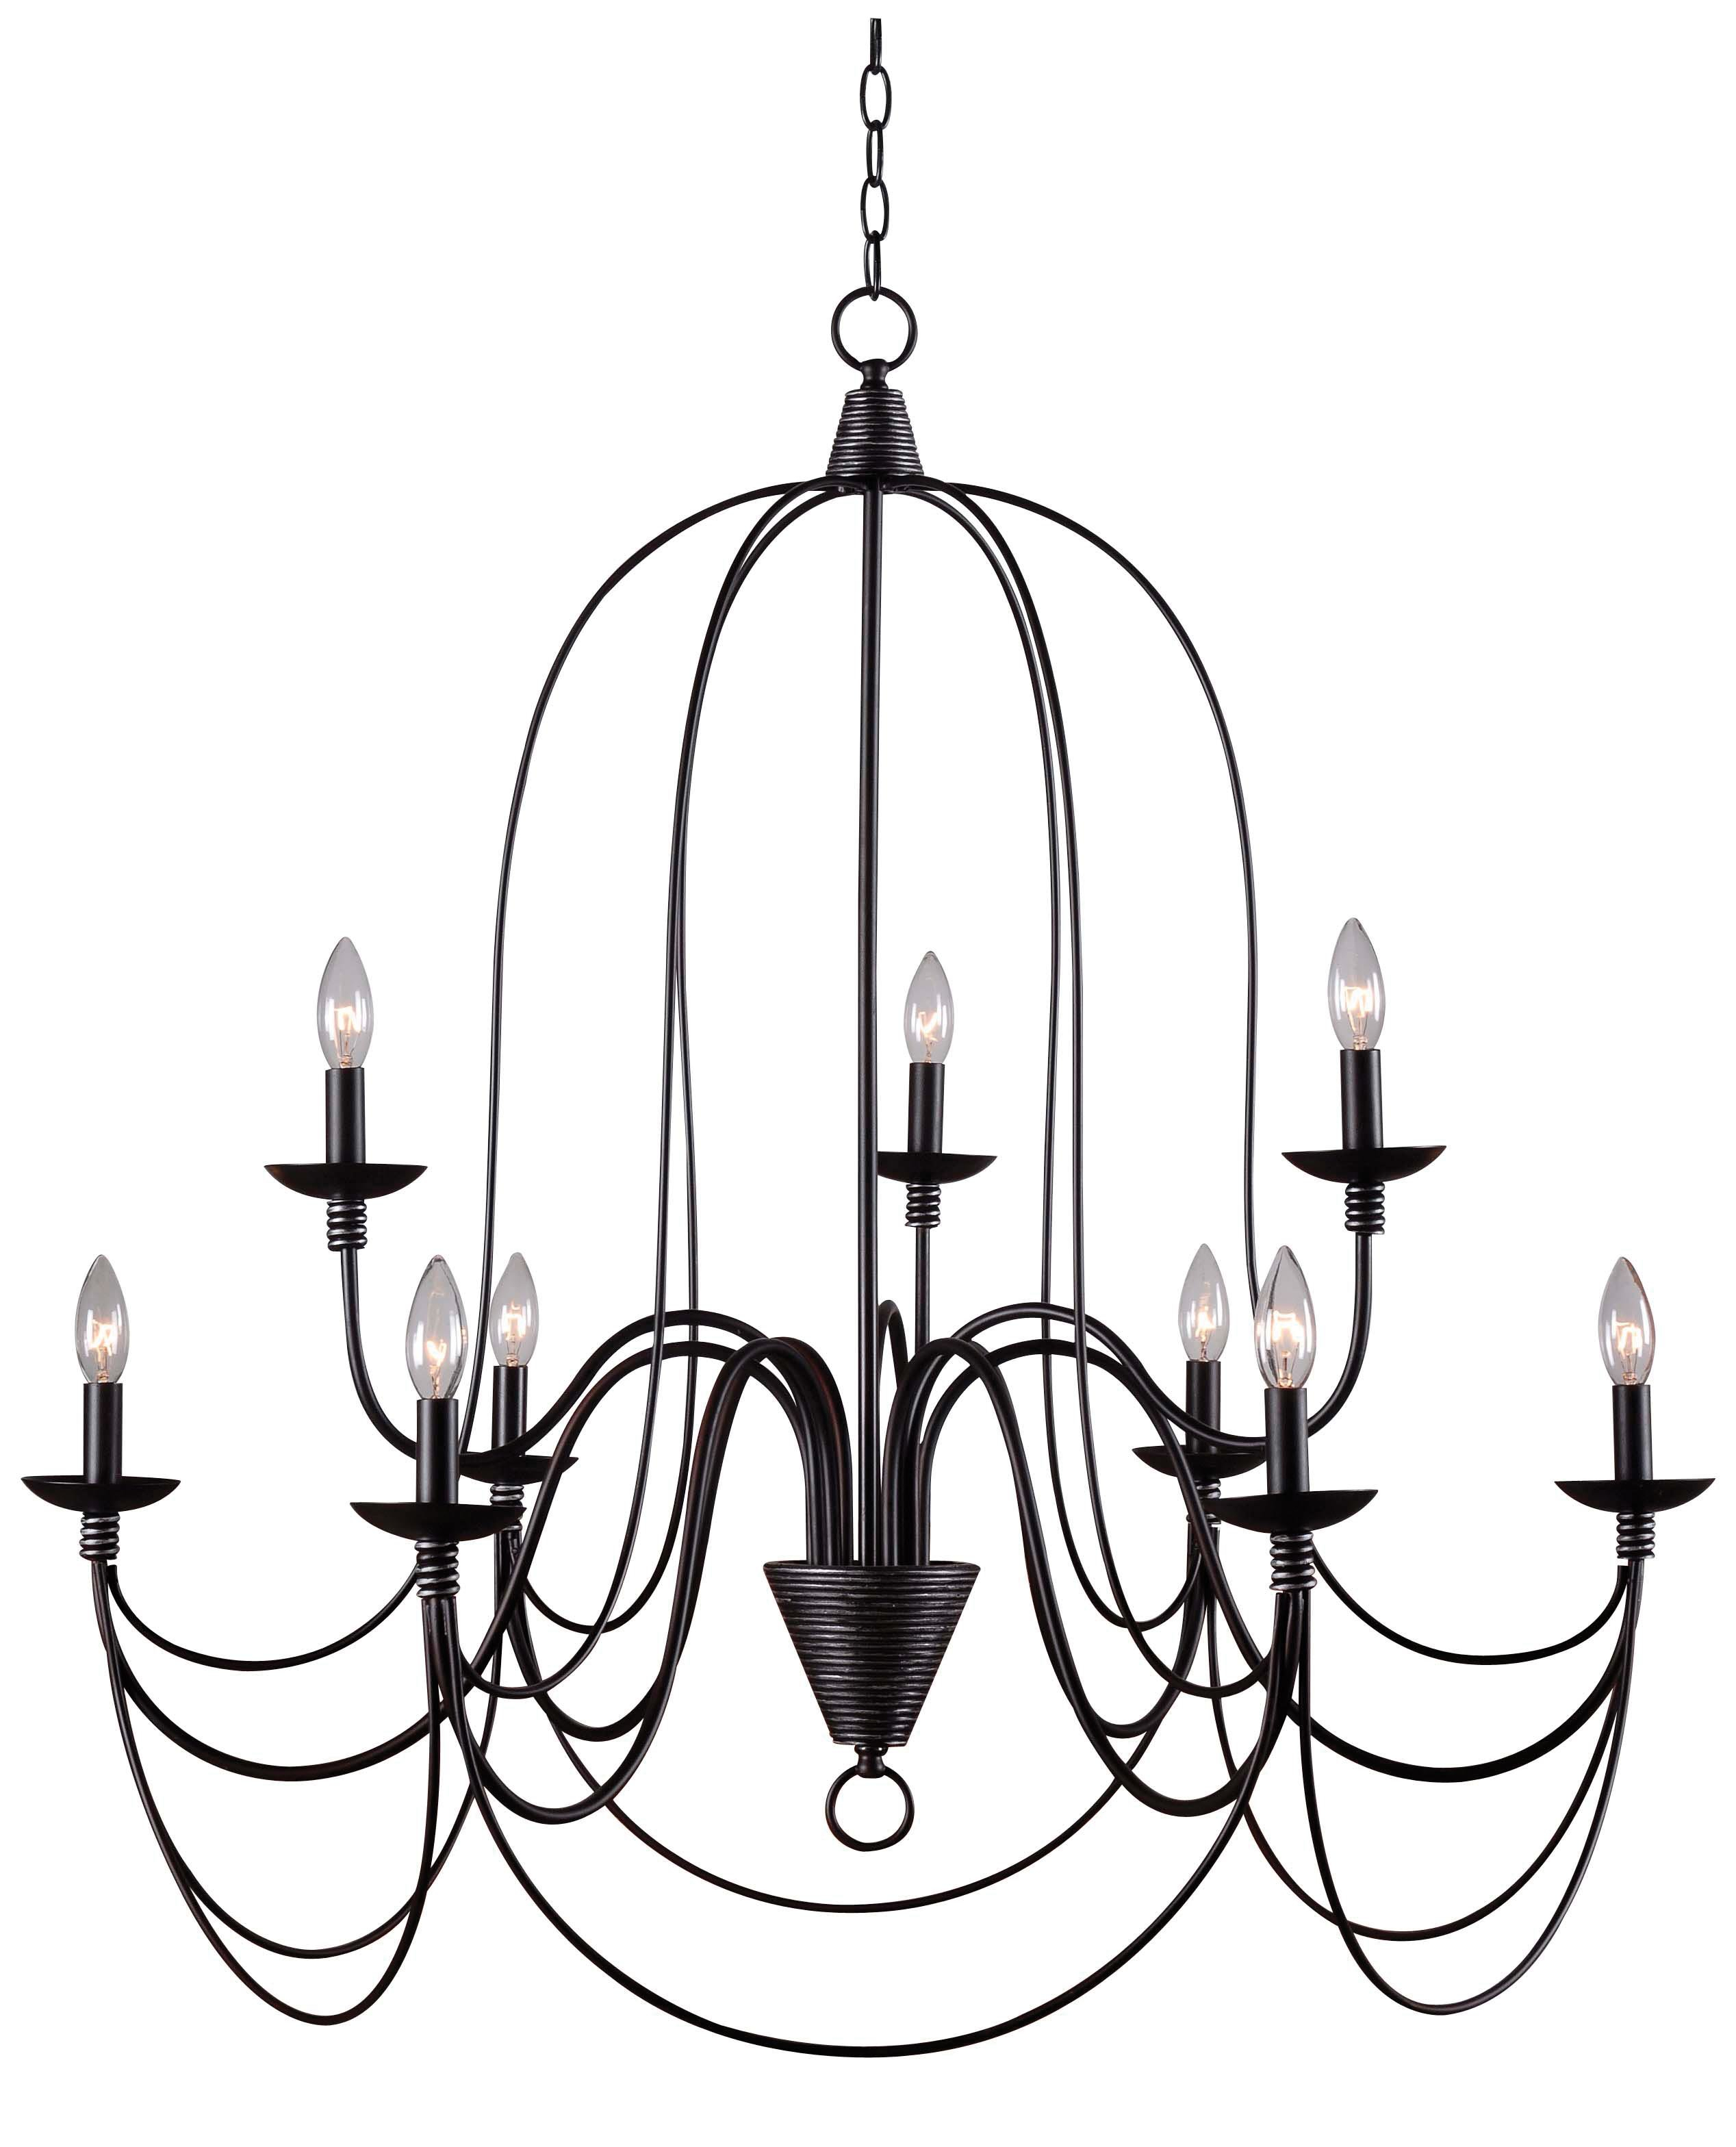 Watford 9-Light Candle Style Chandelier & Reviews | Joss & Main for Watford 6-Light Candle Style Chandeliers (Image 26 of 30)